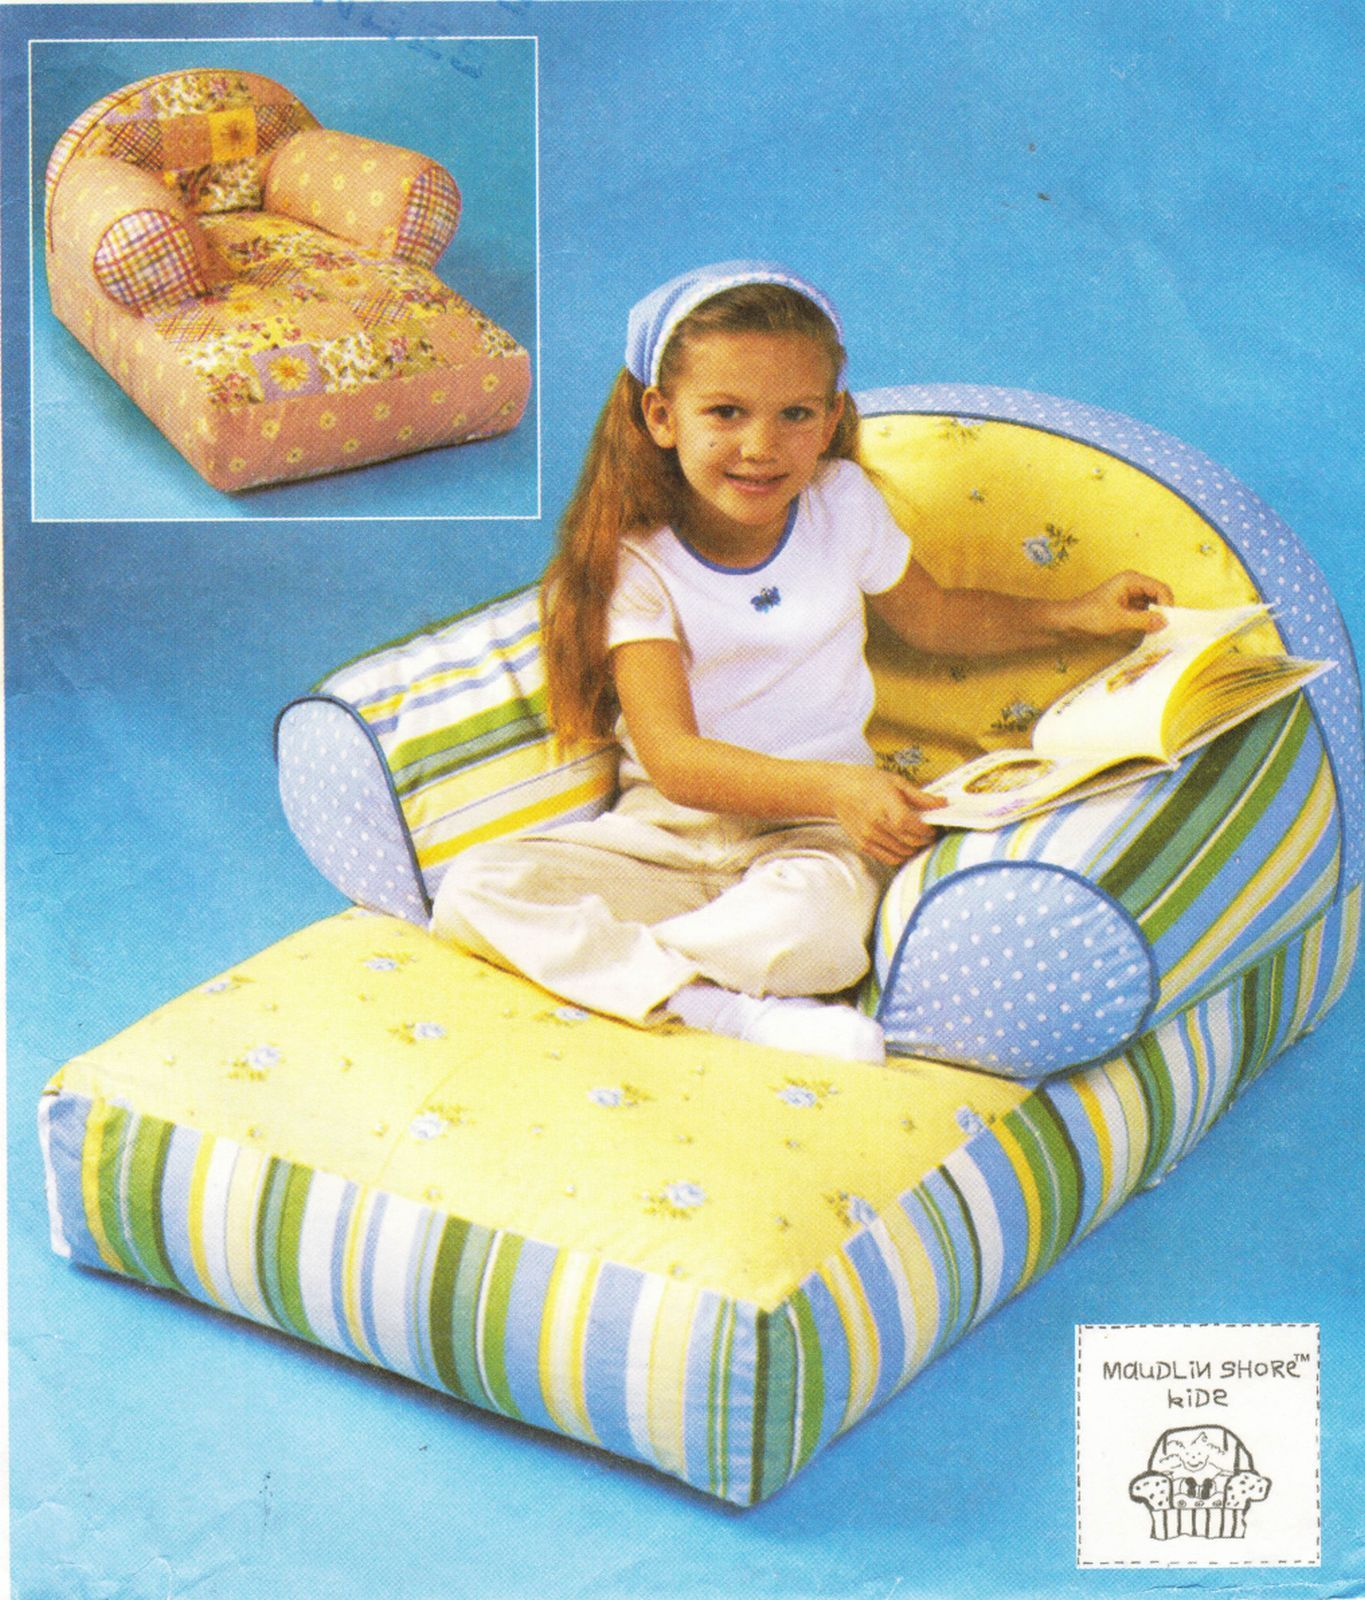 Maudlin Shore Kids Childs Chaise Lounge Chair Zip